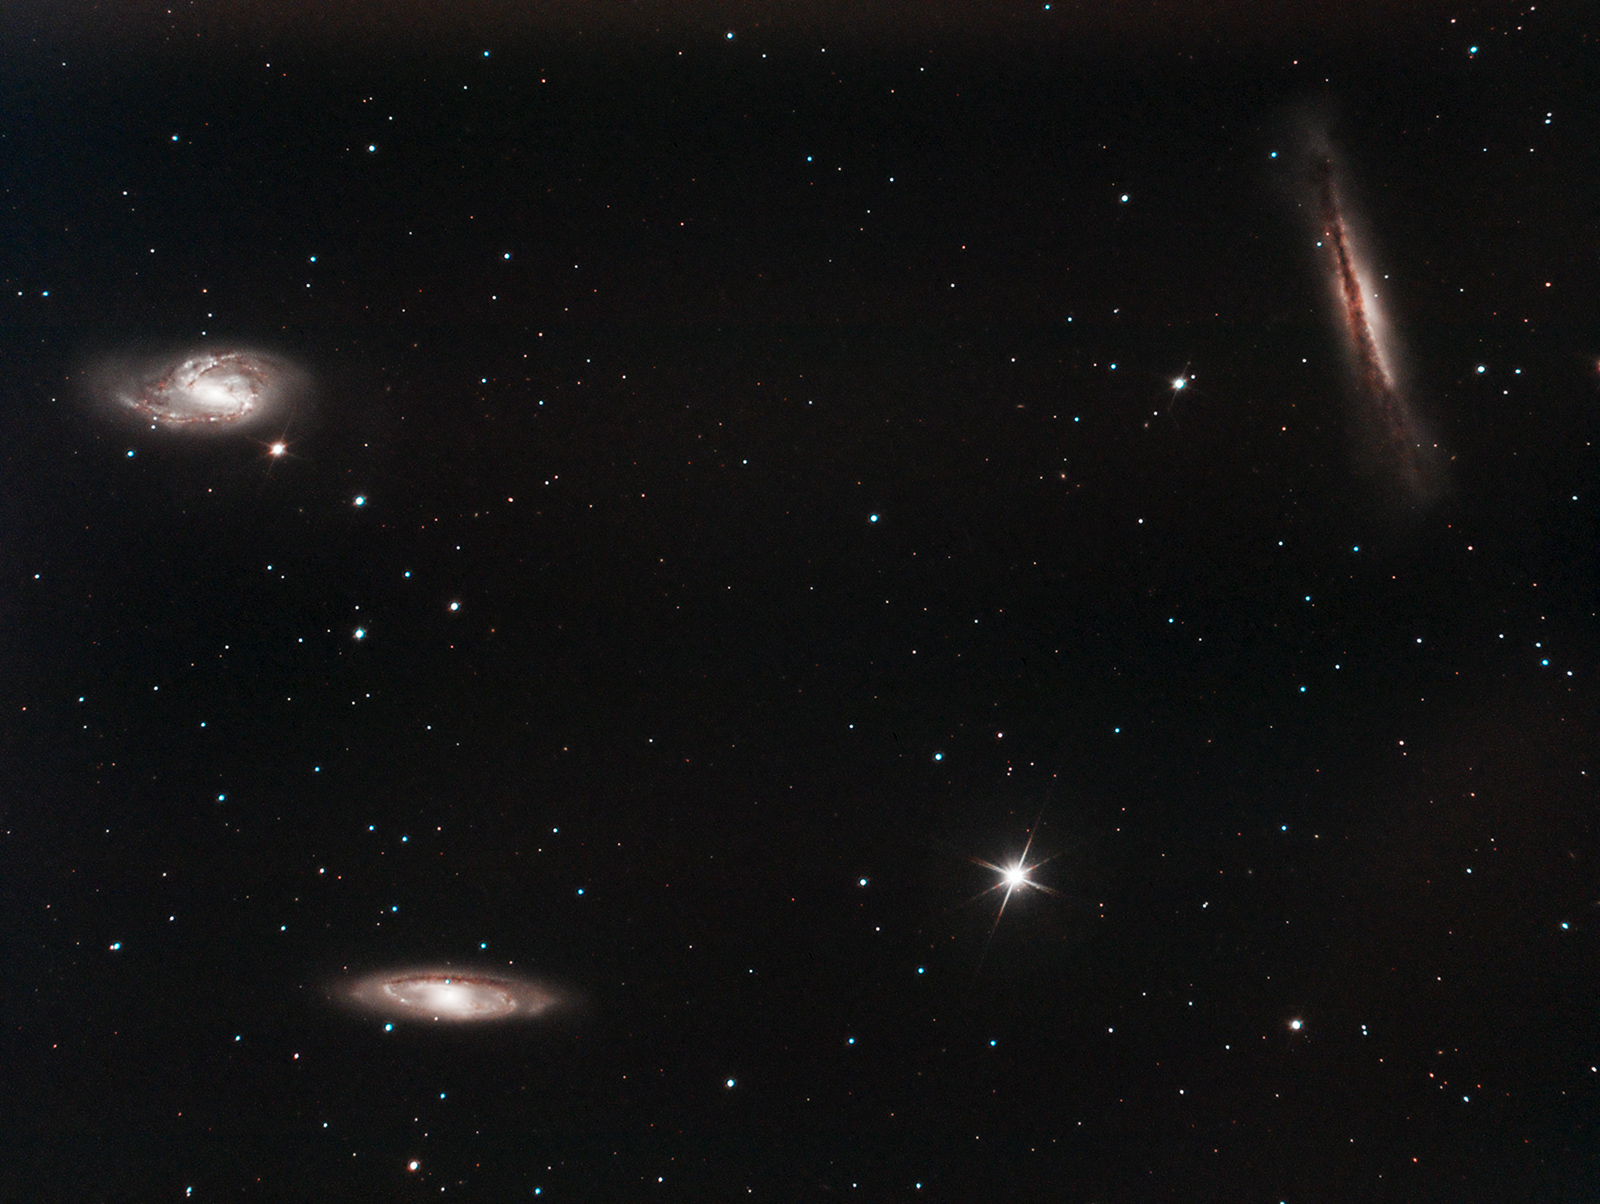 The Leo Triplet - M65, M66 and NGC3628